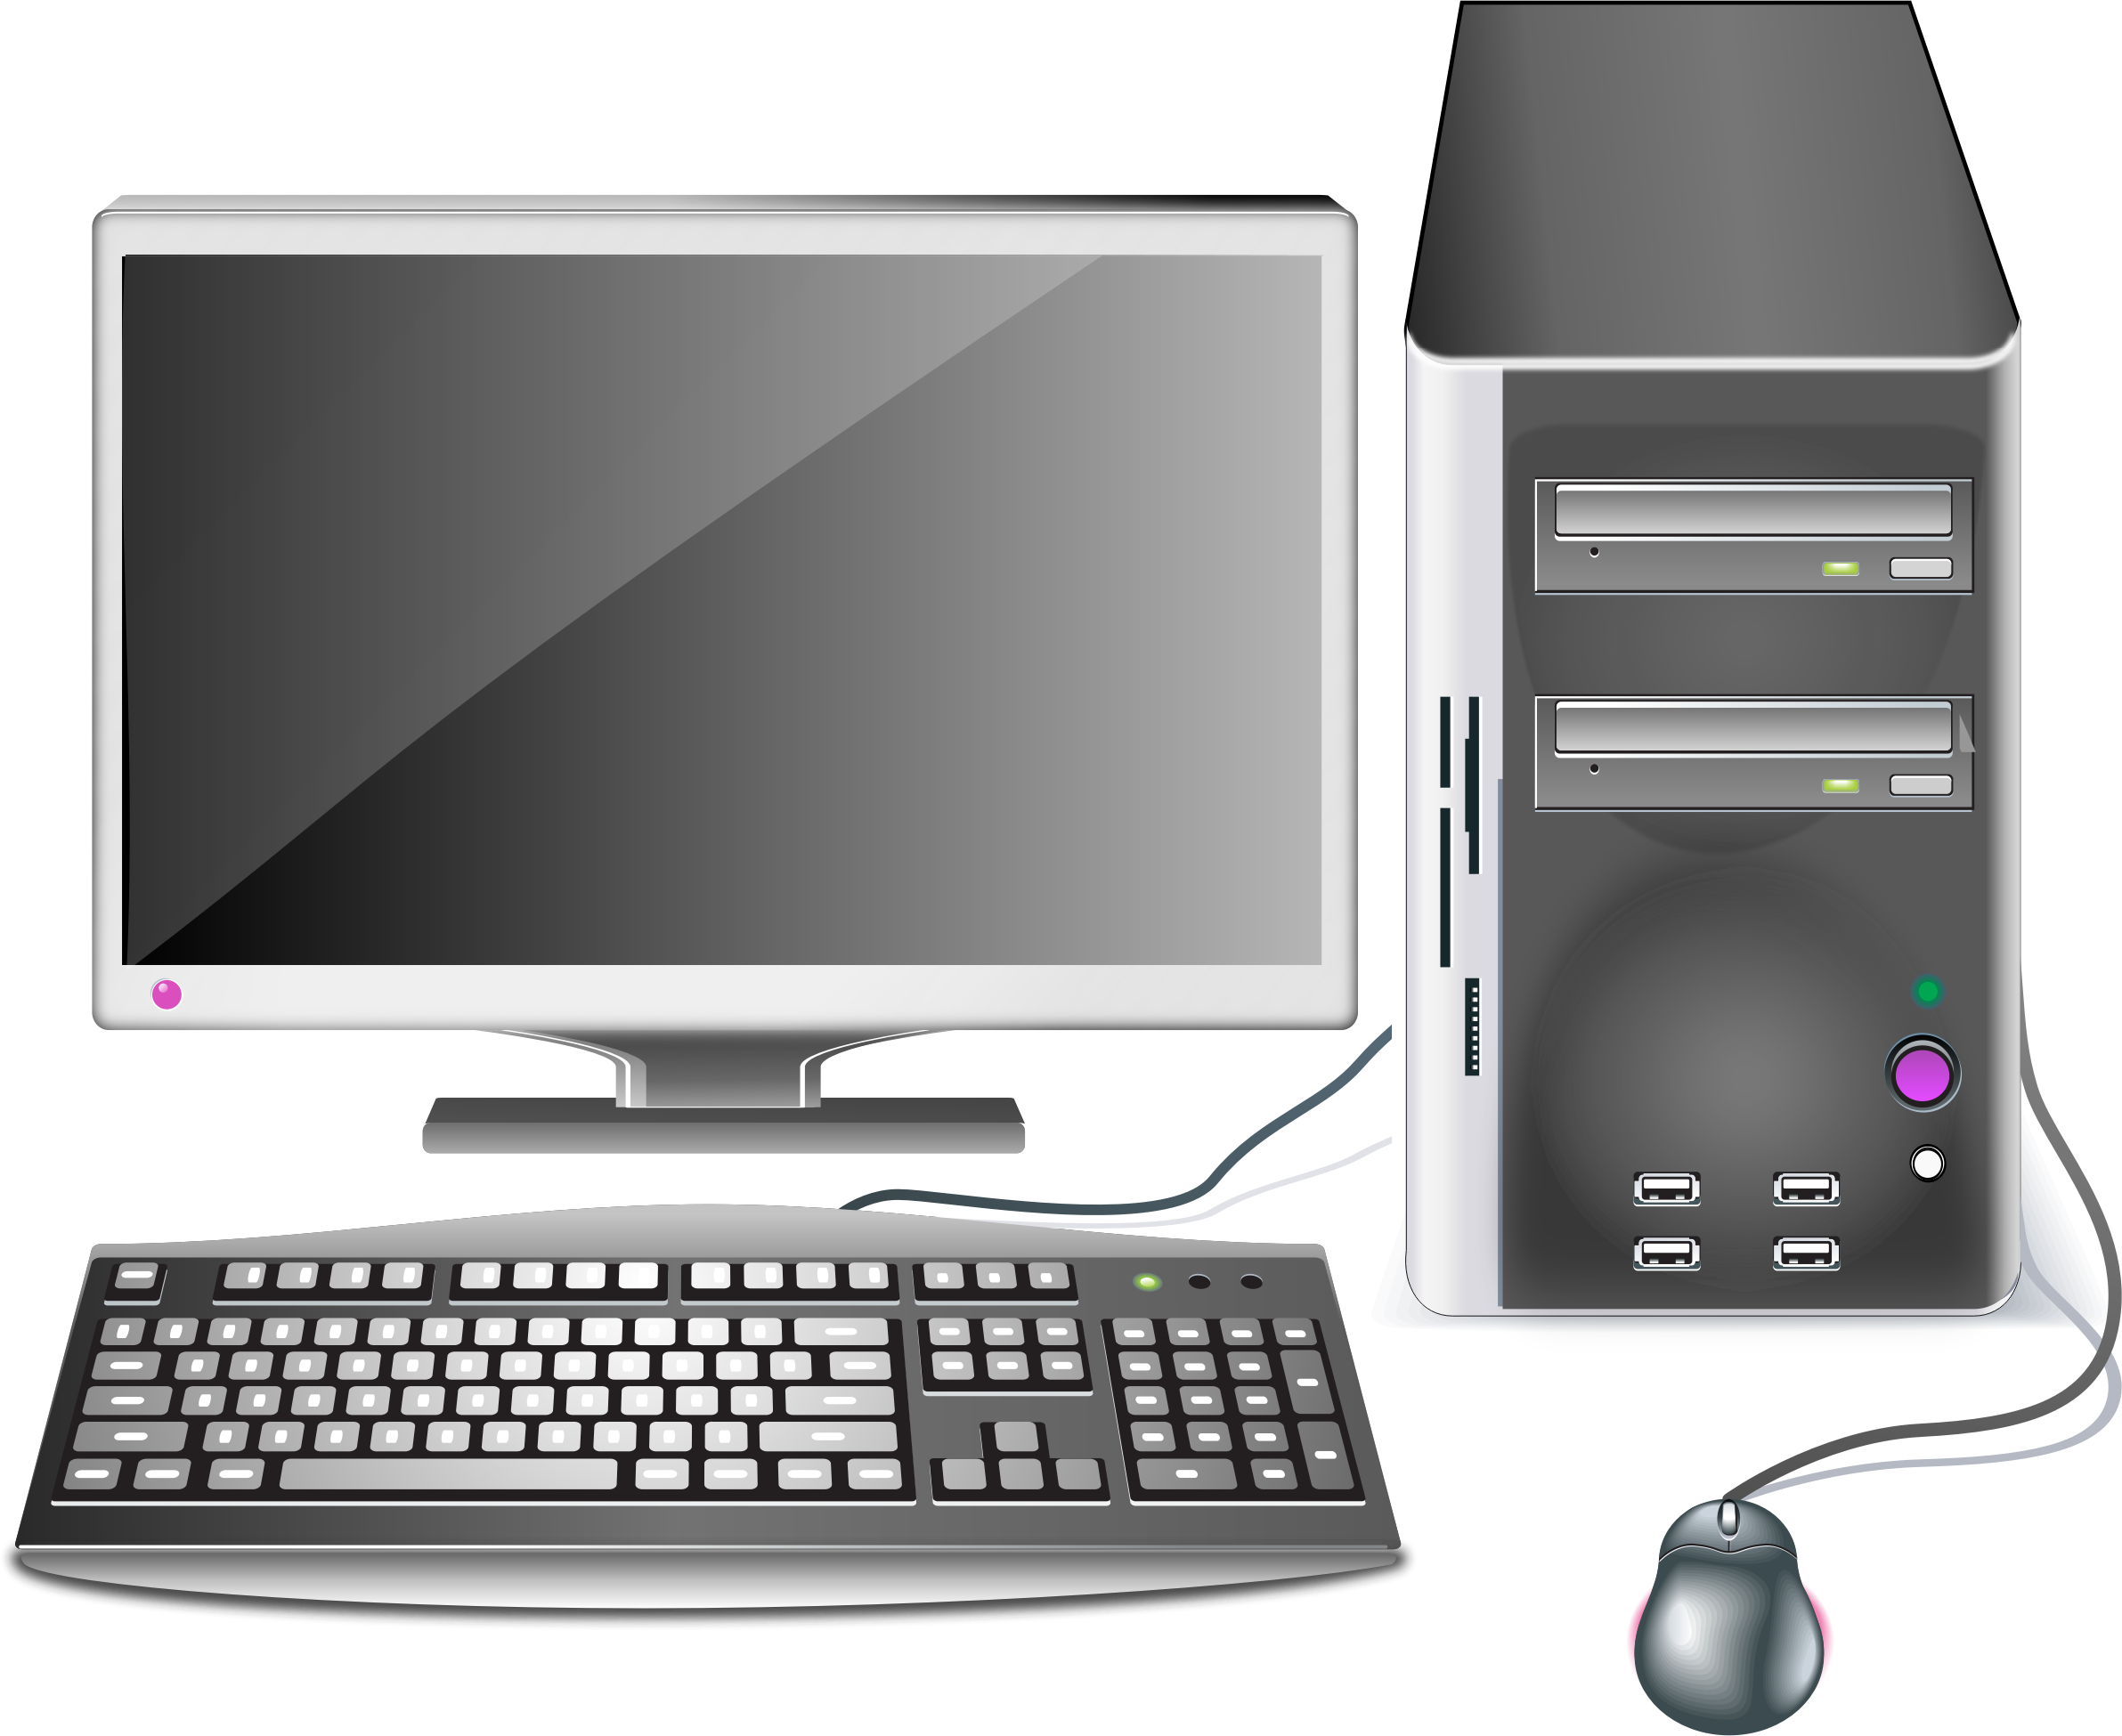 Information clipart computer technology. Pin by gy ngyi